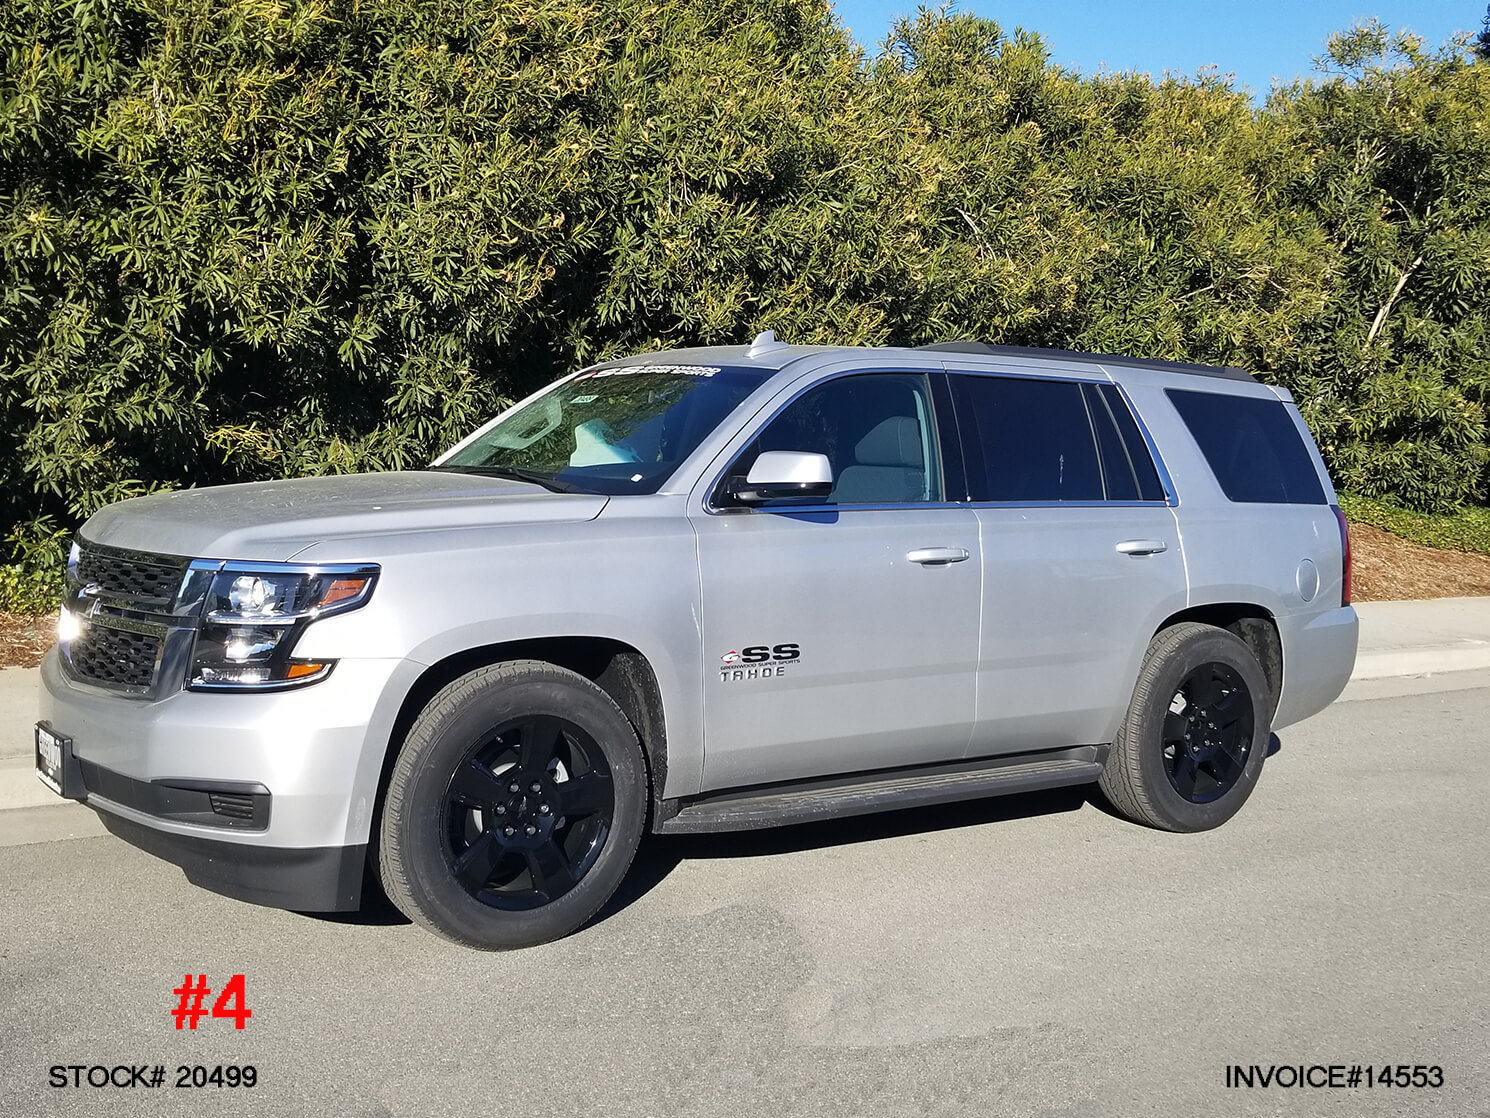 20499-2018 CHEVY TAHOE